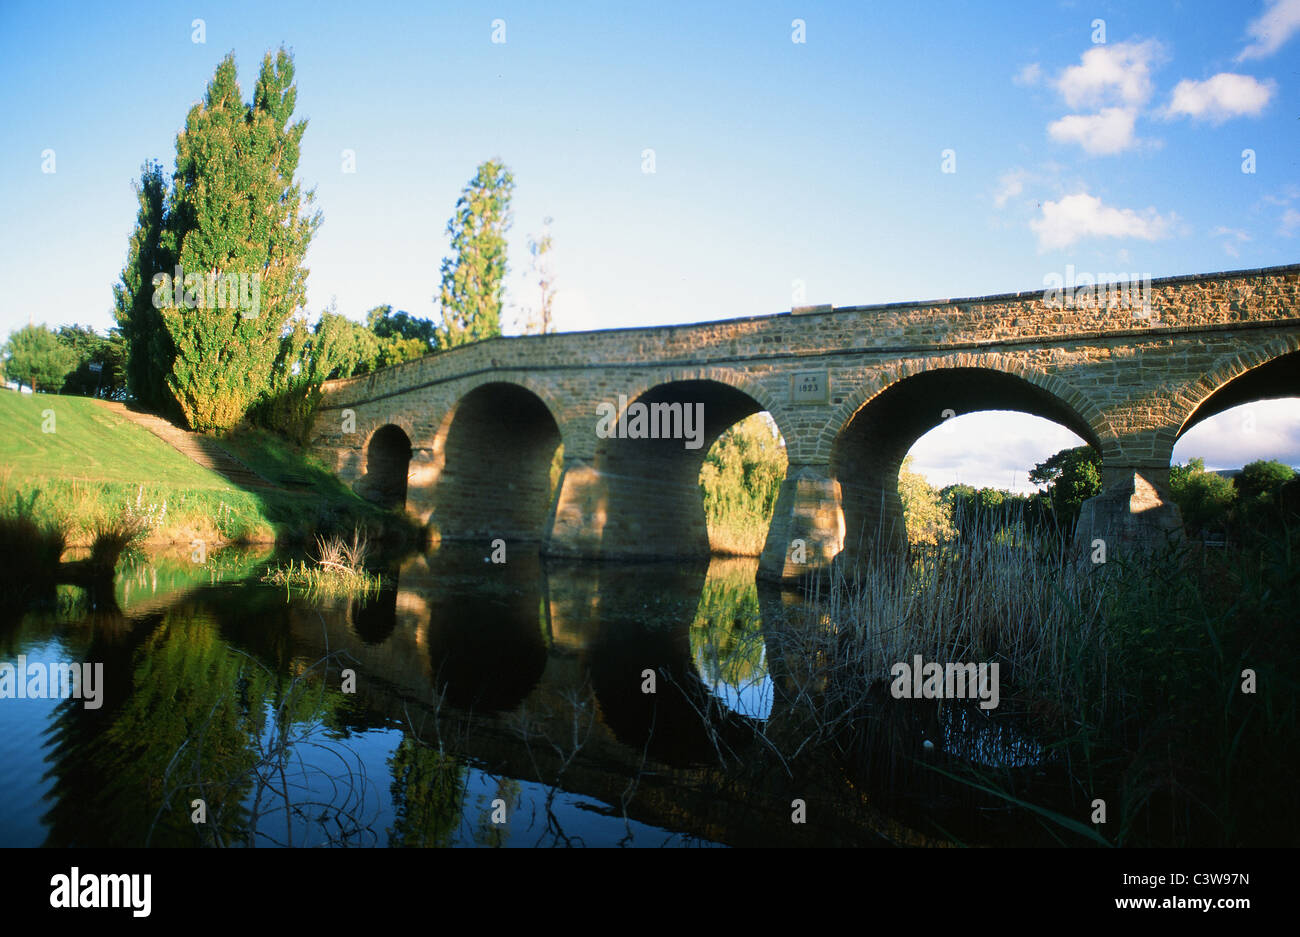 RIchmond Bridge (1823) in Richmond, Tasmania, is the island's oldest bridge and was built by convincts from - Stock Image